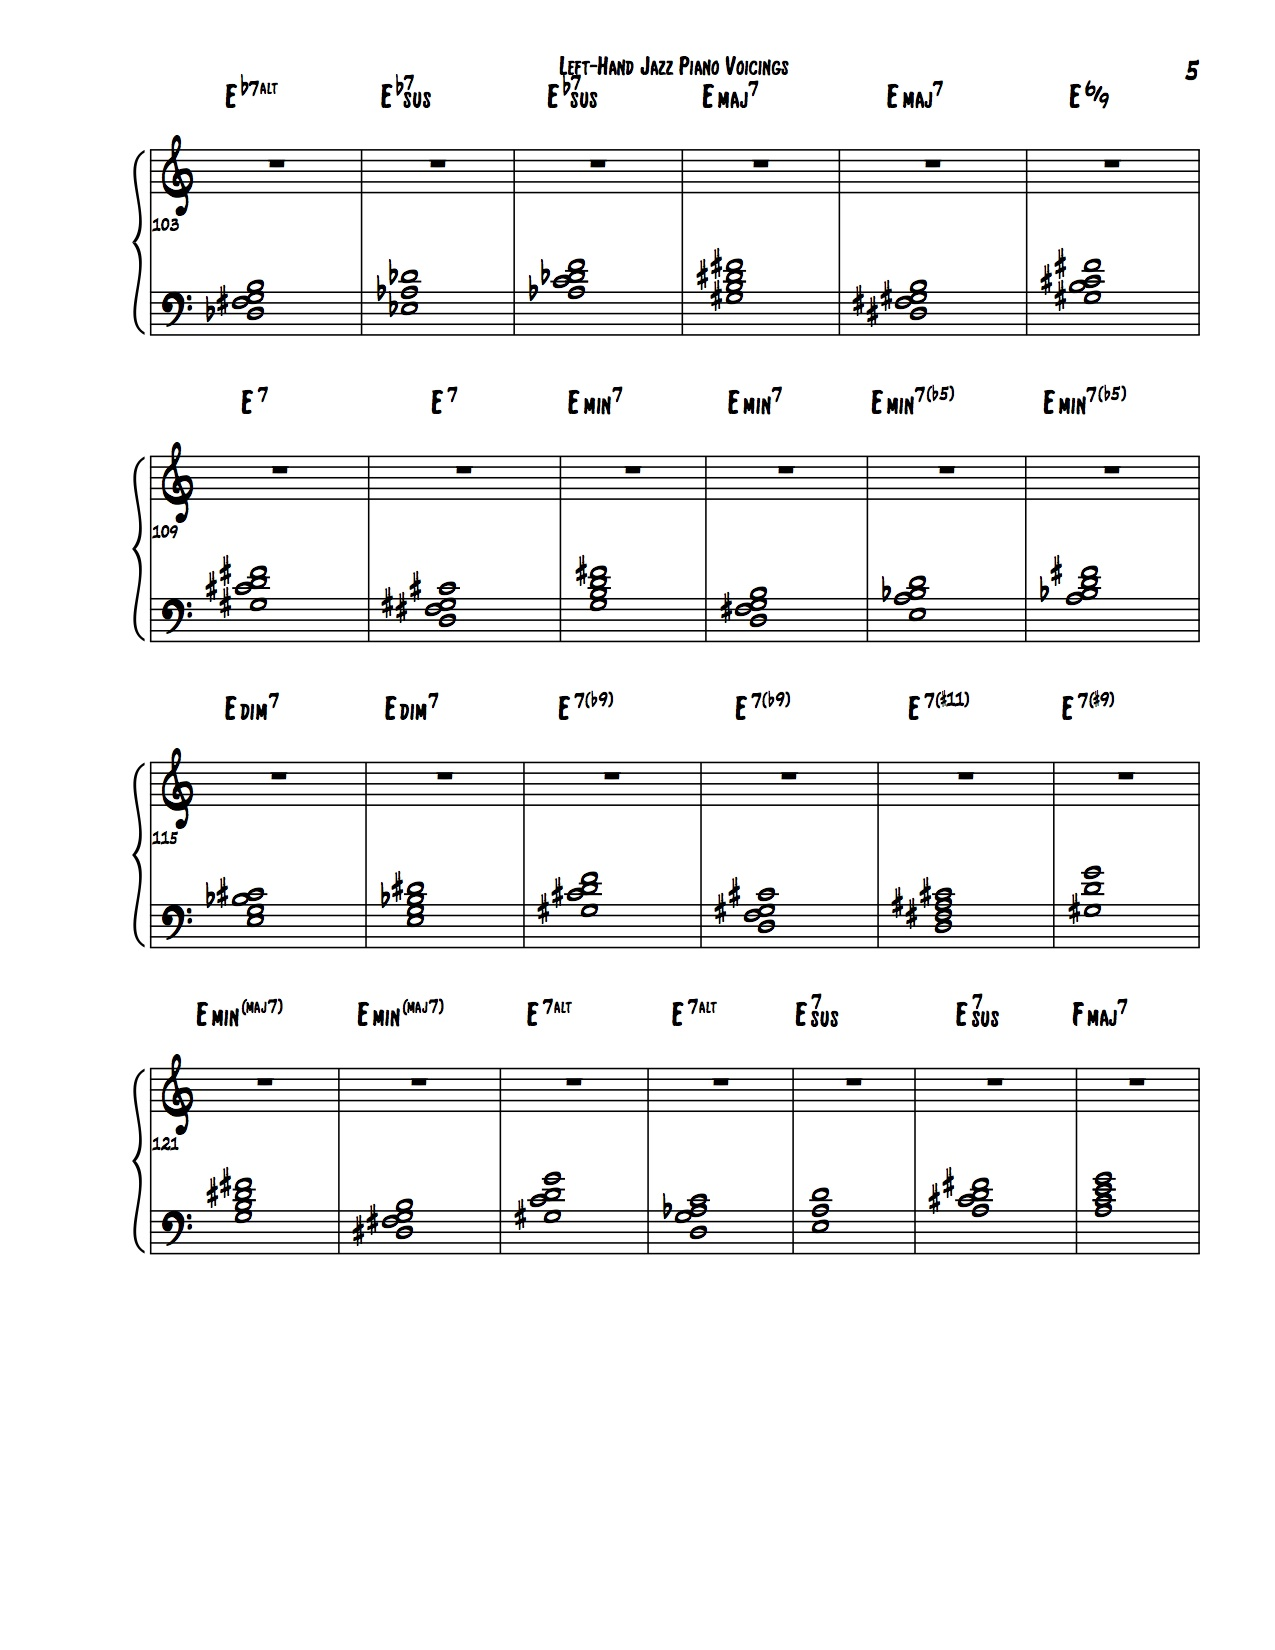 Encyclopedia of Left-Hand Jazz Piano Voicings - Learn Jazz